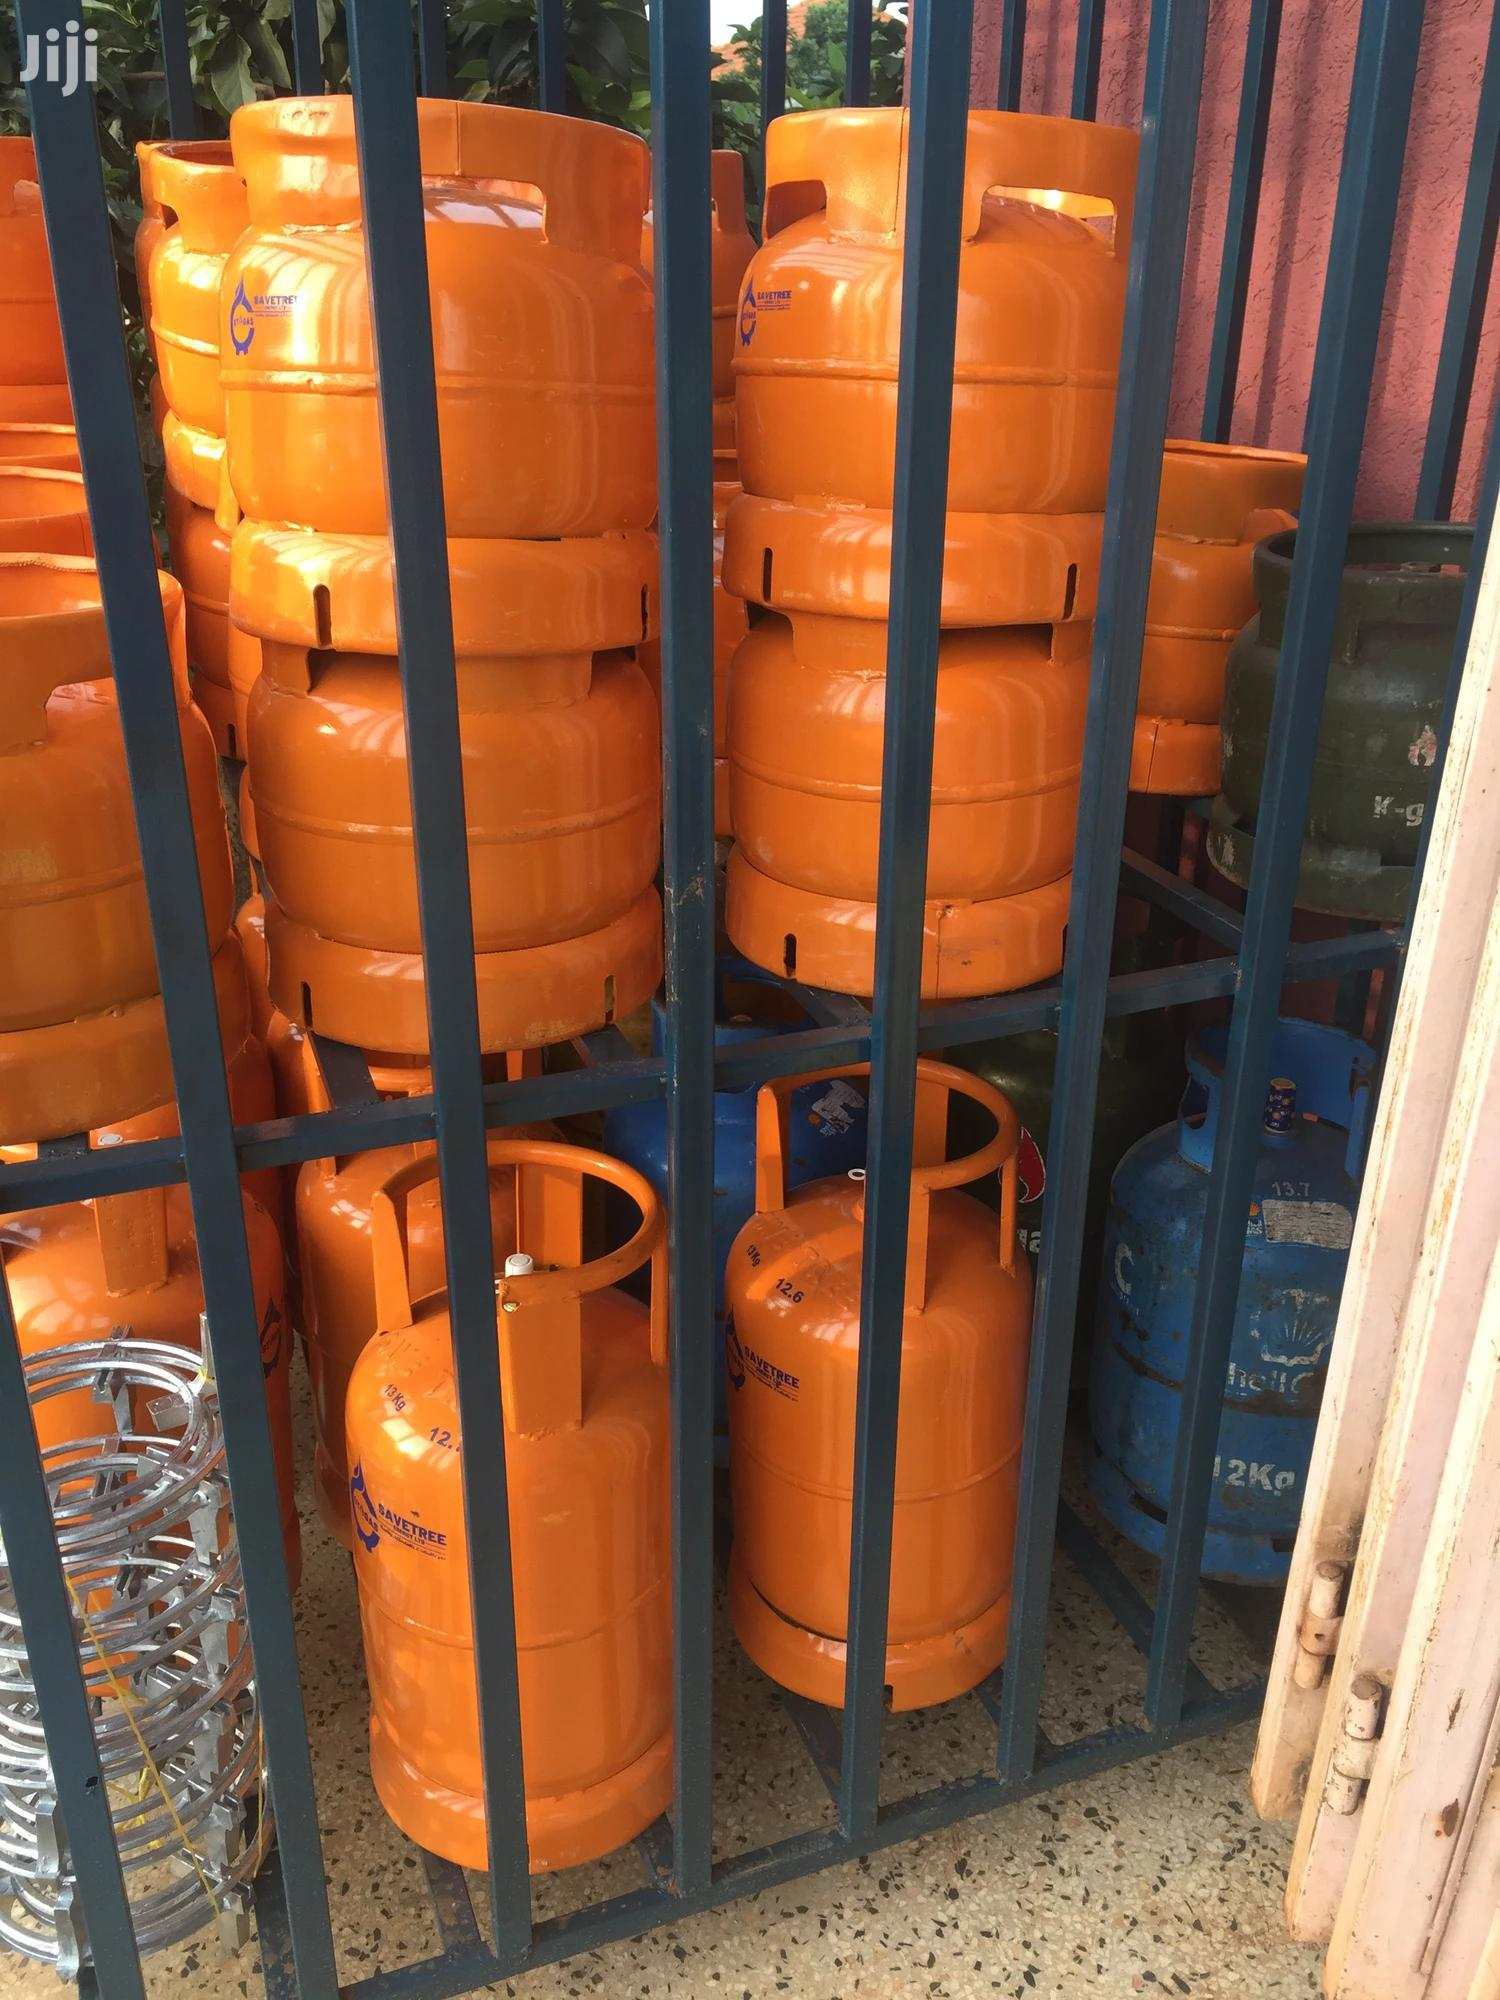 Buying Of New Gas Cylinders And Refilling Old Ones